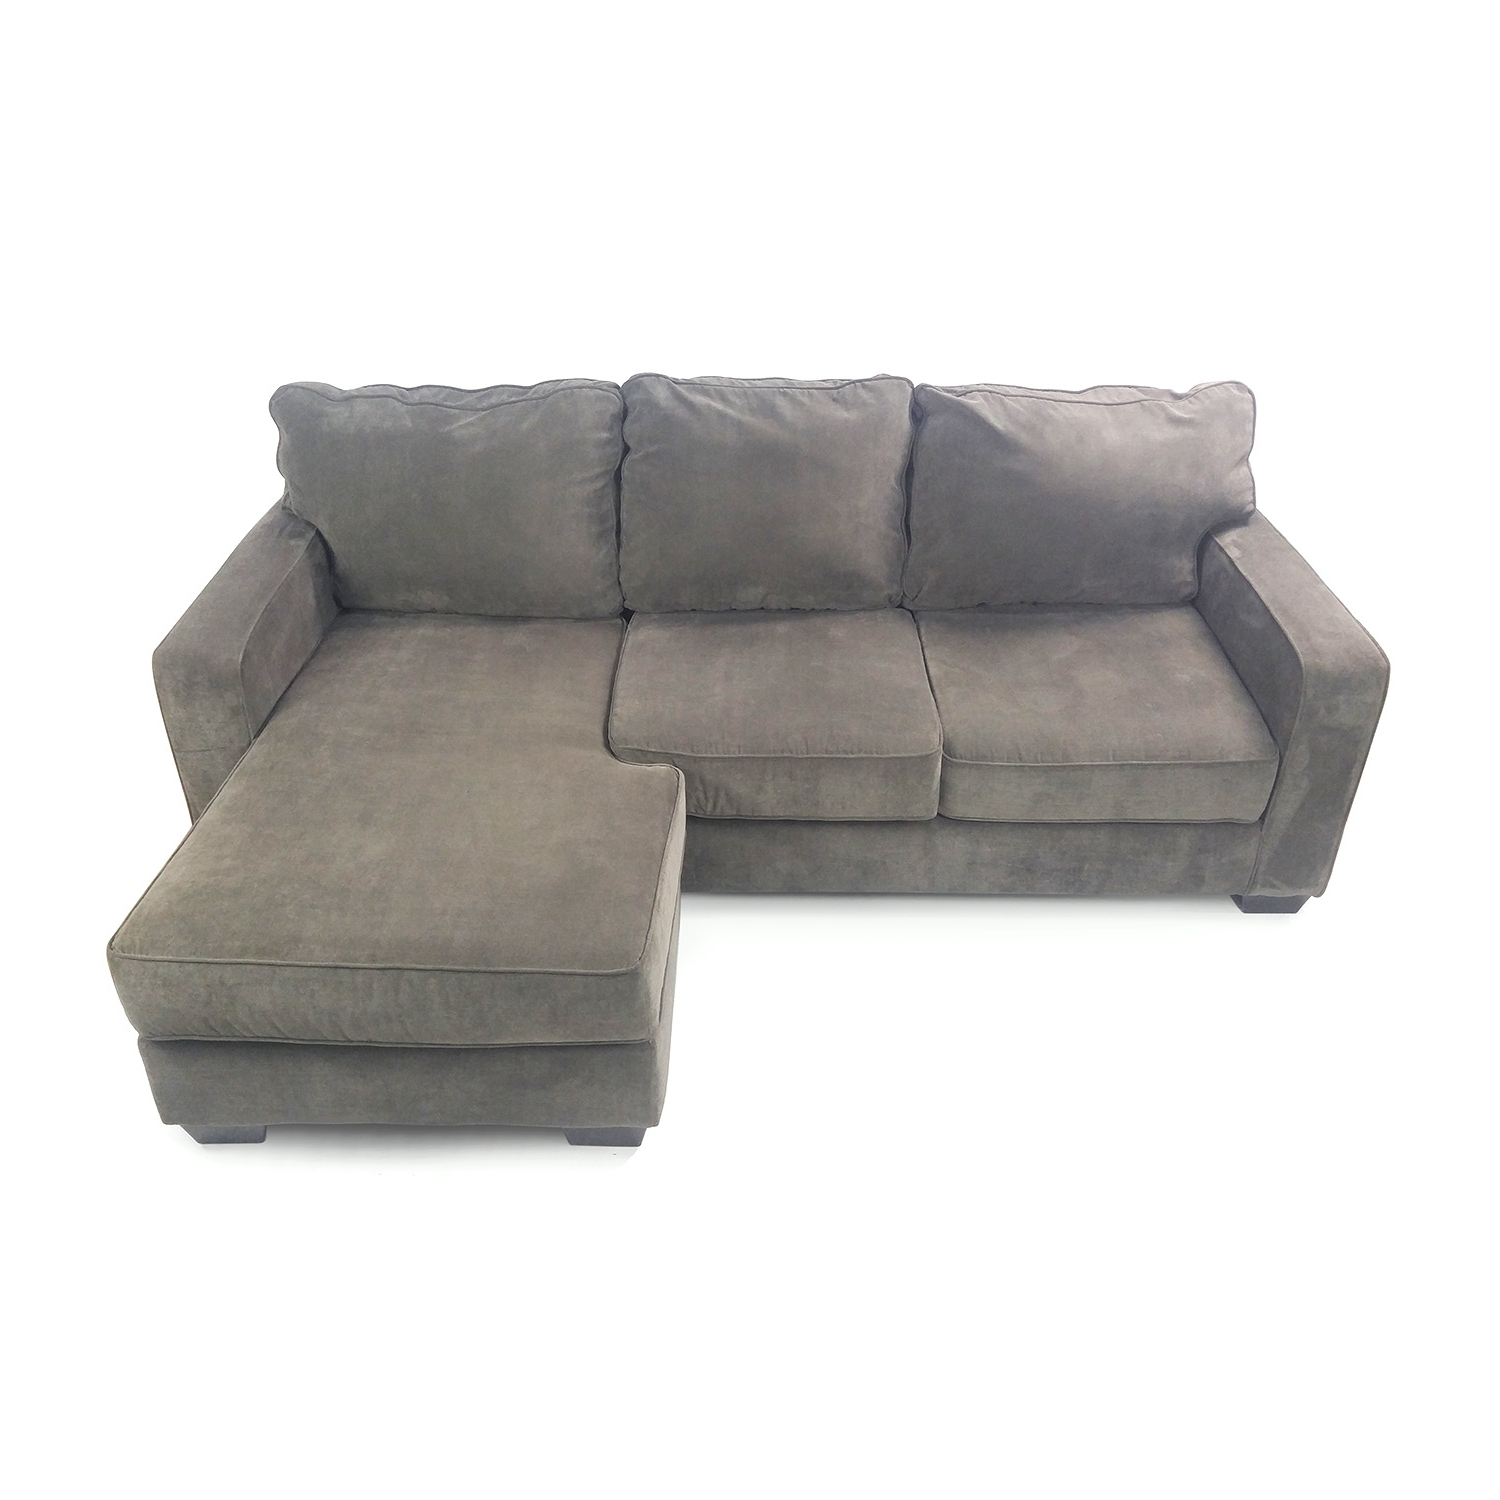 [%50% Off – Ashley Furniture Hodan Sofa Chaise / Sofas Regarding Fashionable Hodan Sofas With Chaise|hodan Sofas With Chaise In Famous 50% Off – Ashley Furniture Hodan Sofa Chaise / Sofas|widely Used Hodan Sofas With Chaise For 50% Off – Ashley Furniture Hodan Sofa Chaise / Sofas|most Current 50% Off – Ashley Furniture Hodan Sofa Chaise / Sofas Pertaining To Hodan Sofas With Chaise%] (View 13 of 15)